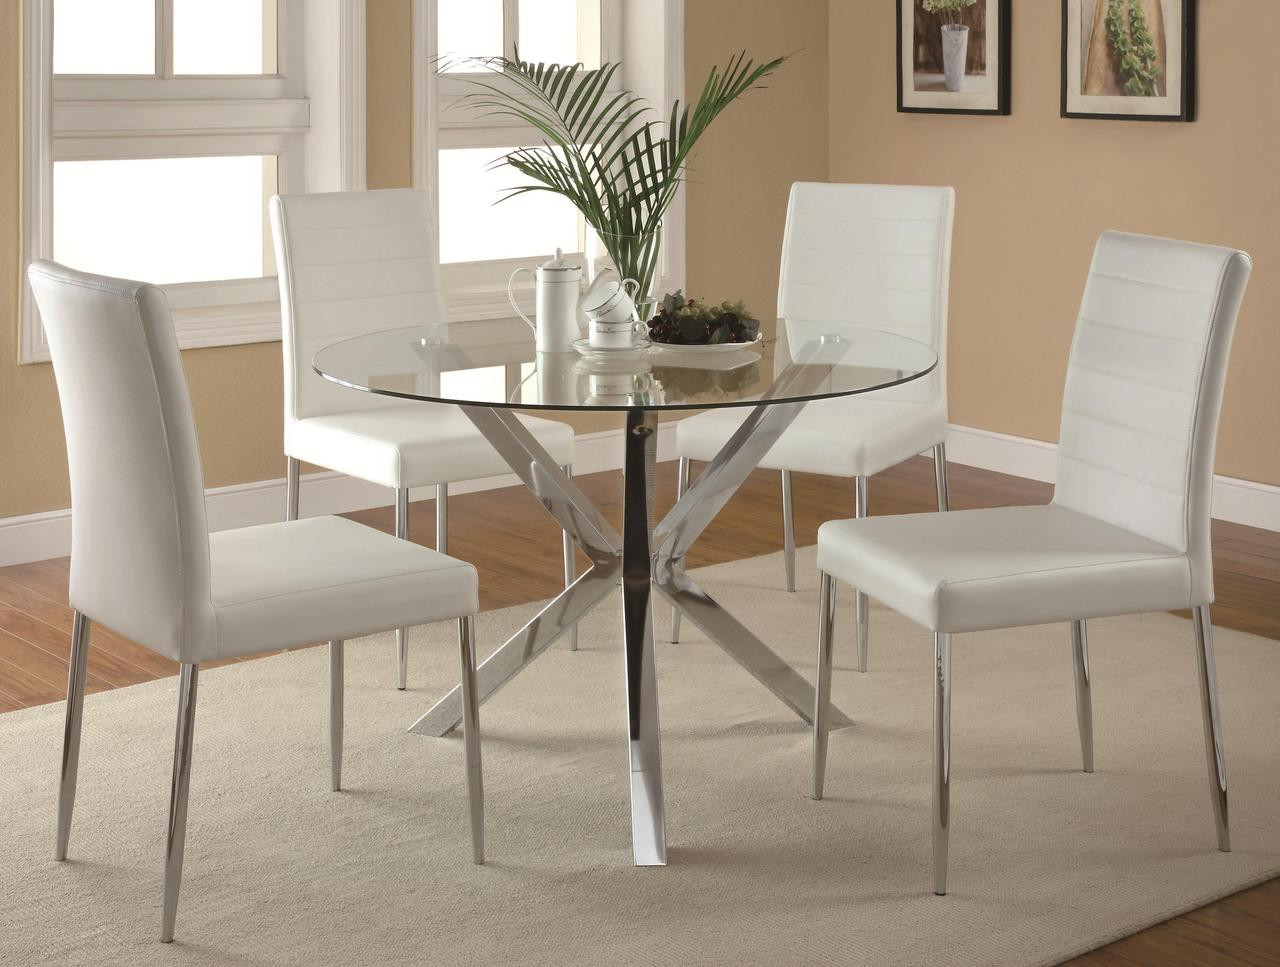 Groovy Leah 5 Pc Dining Set White Leather Chairs Pdpeps Interior Chair Design Pdpepsorg